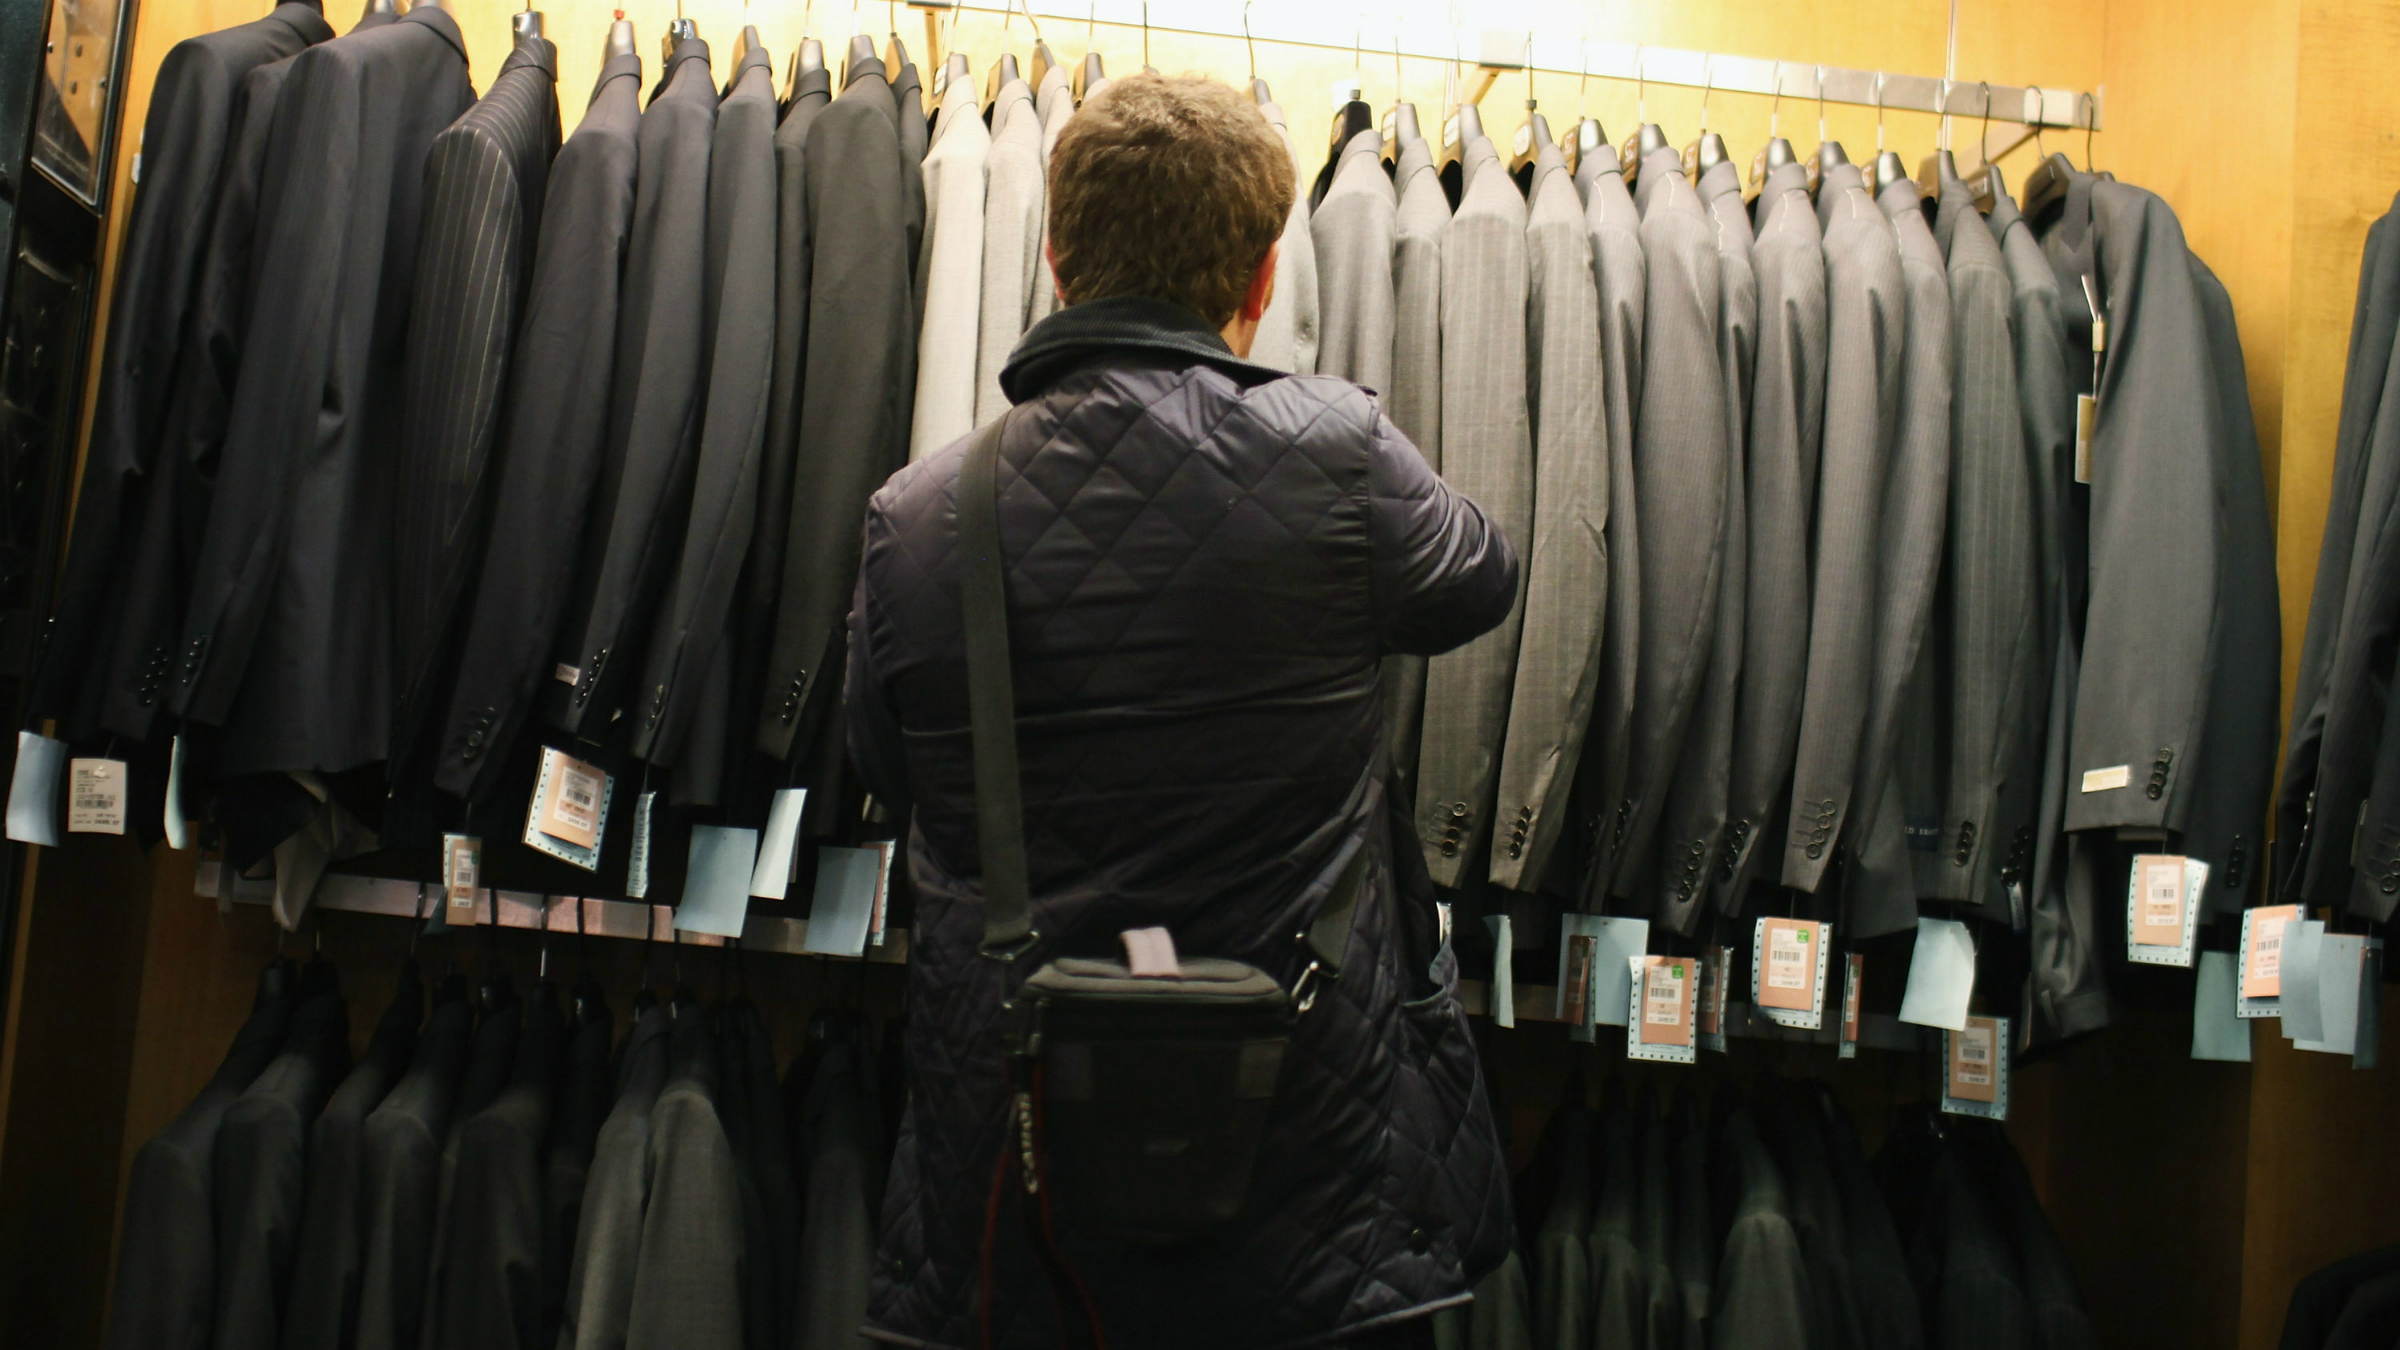 Men are shopaholics too